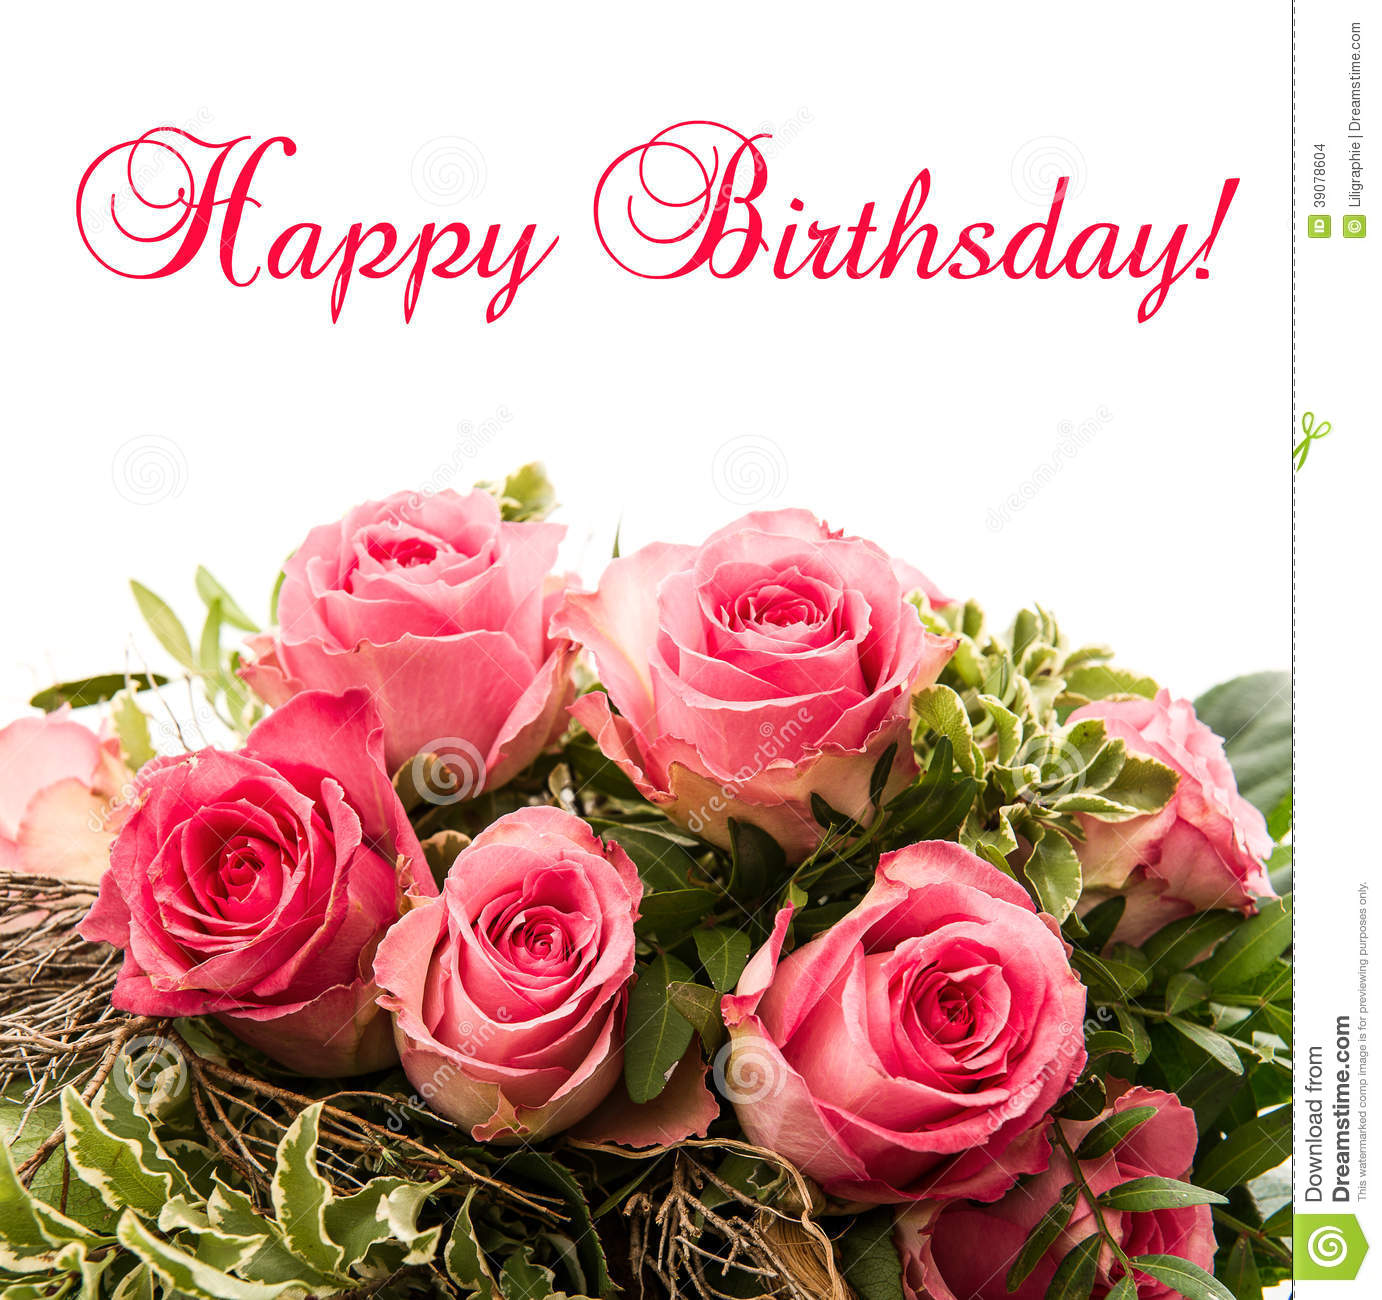 Hoontoidly roses bouquet for birthday images roses bouquet for birthday beautiful flowers izmirmasajfo